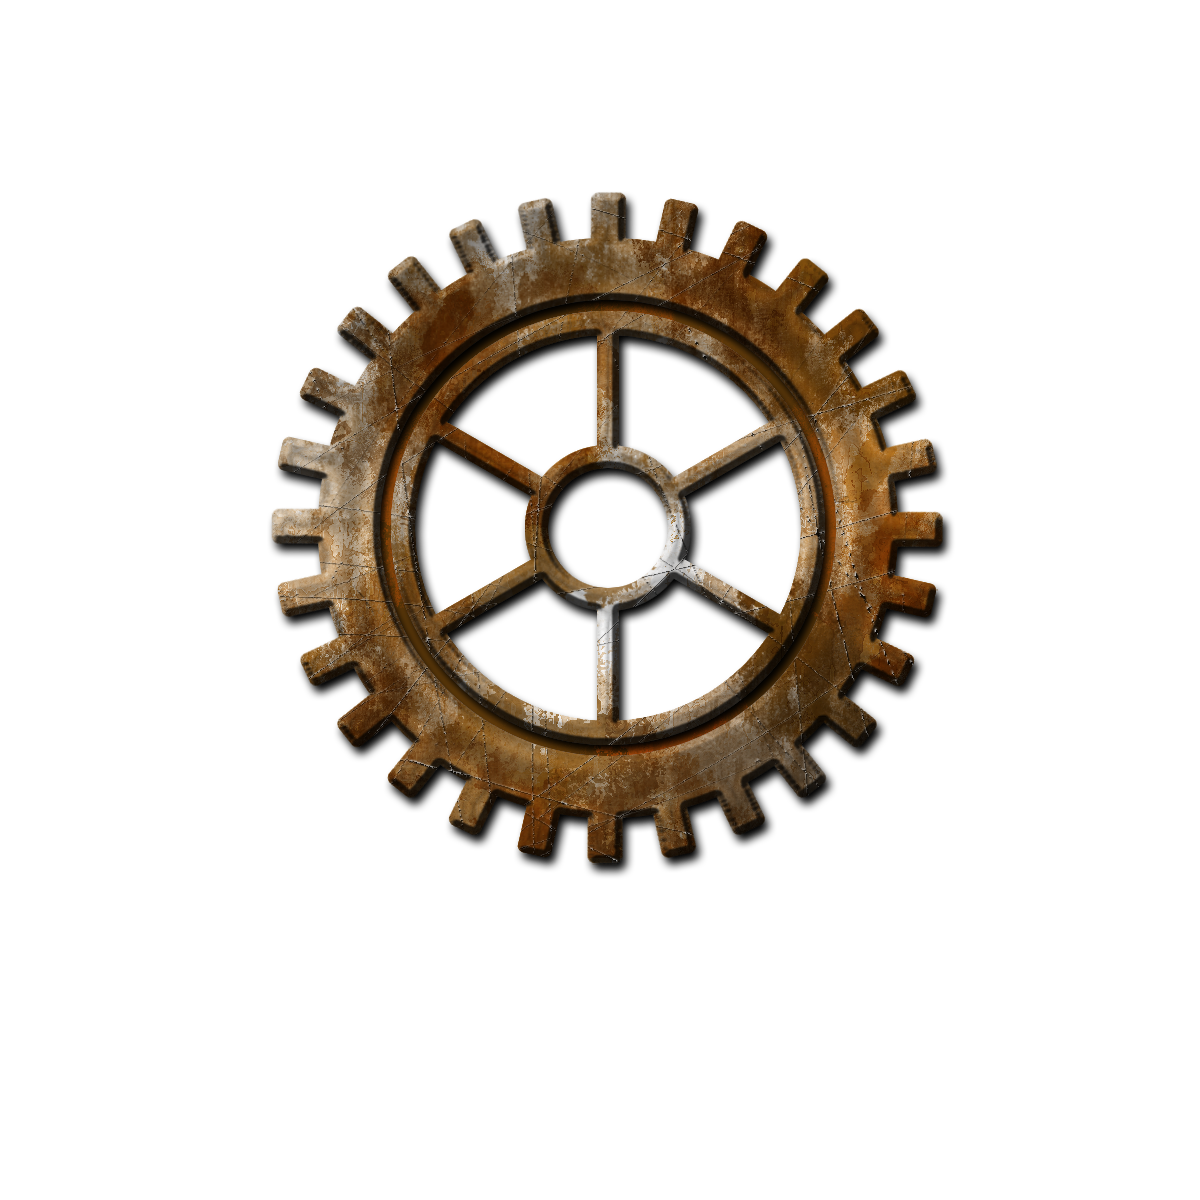 Steampunk Gear Transparent Background PNG Image